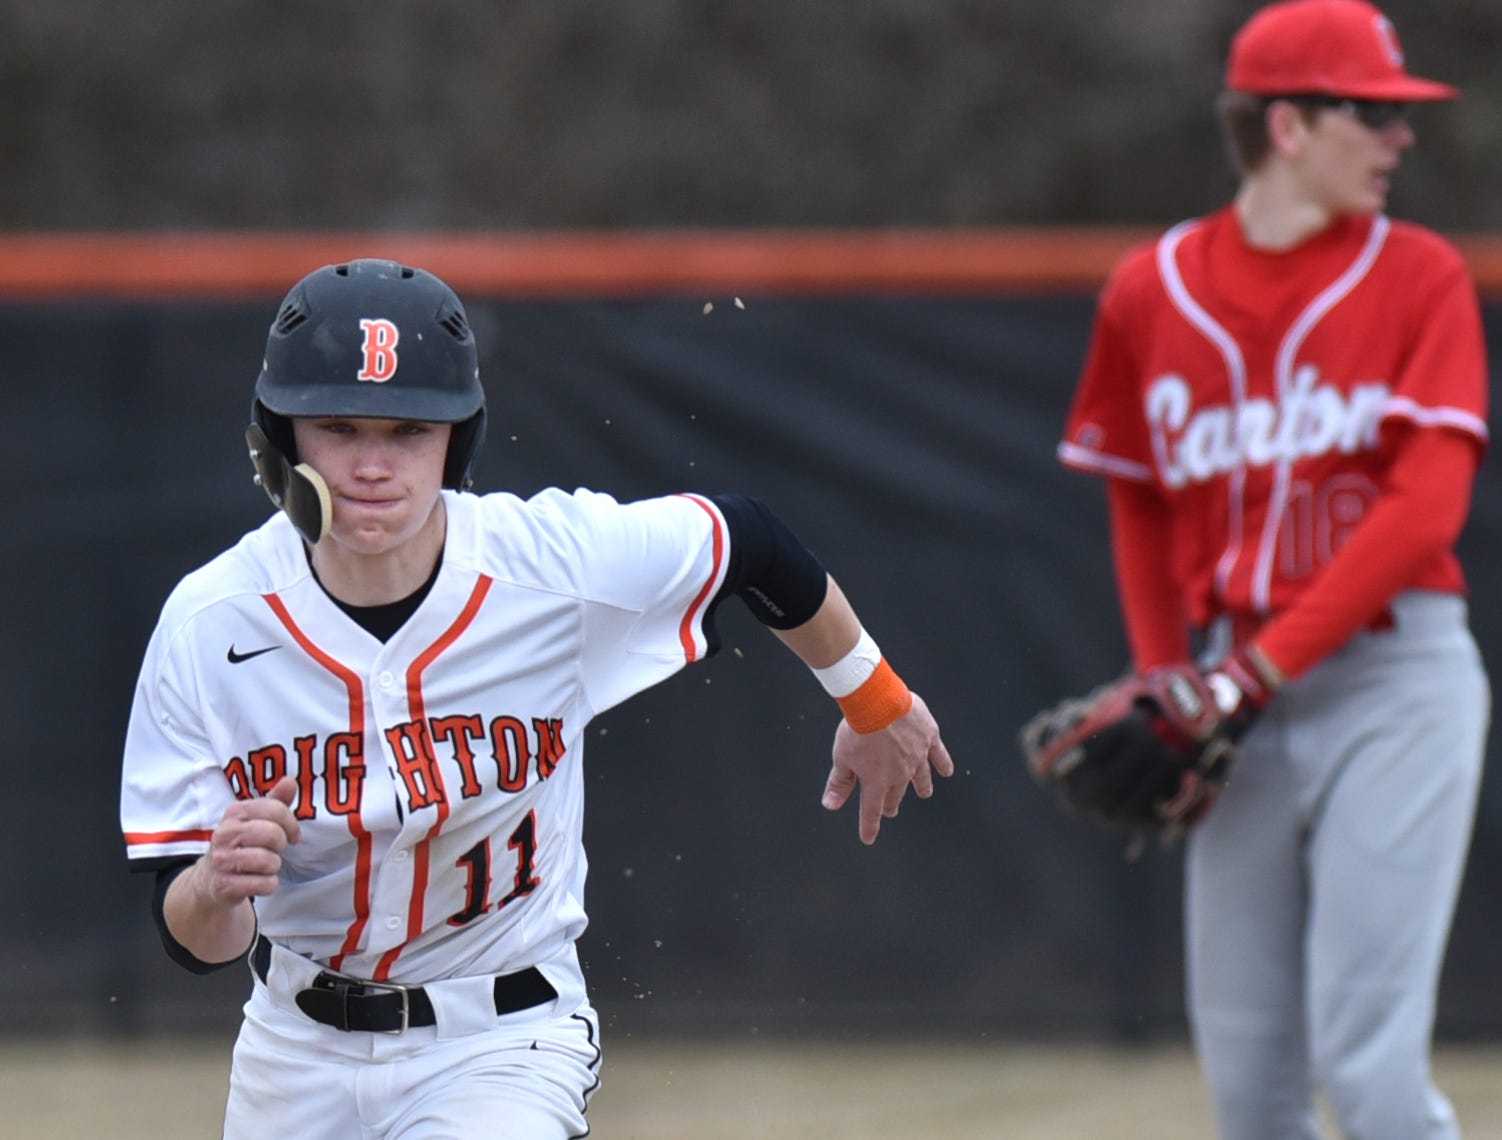 Brighton's Brendan Harrity heads for third base against Canton on Tuesday, April 2, 2019.